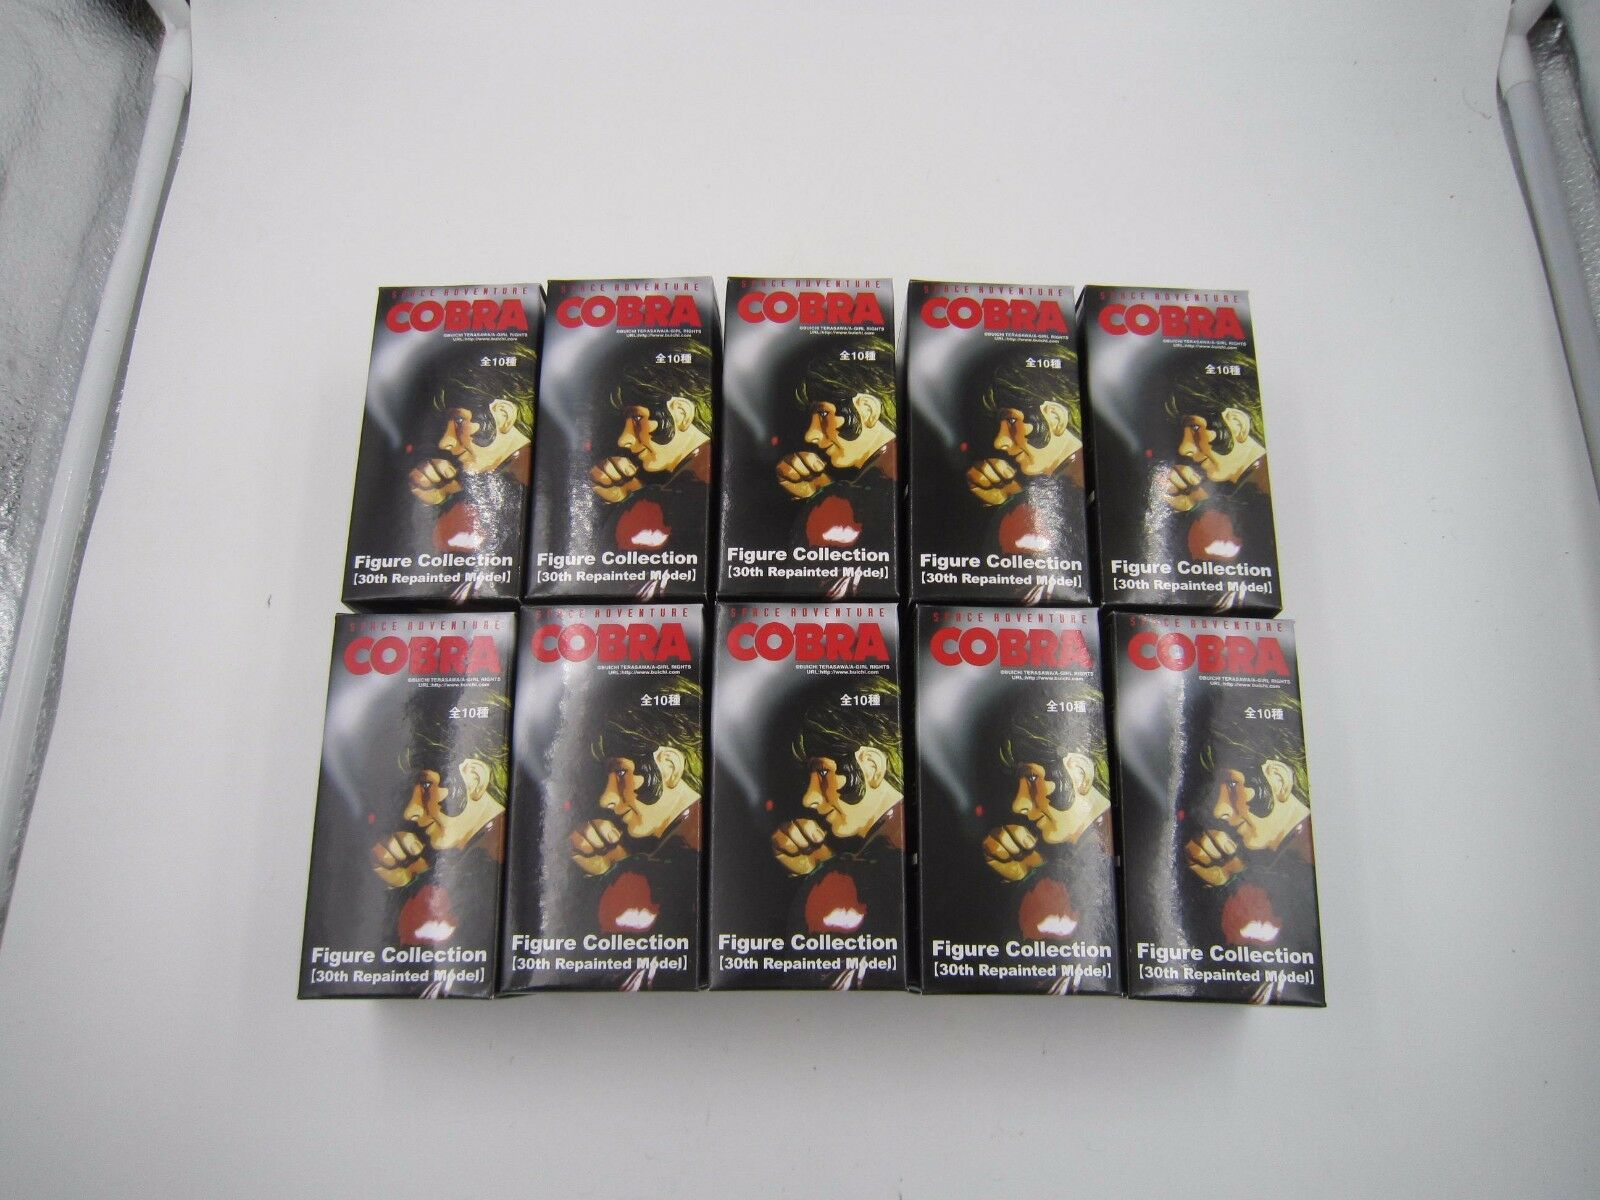 Space Adventure Cobra The Space Pirate 30th Repainted Figure Collection Full Set